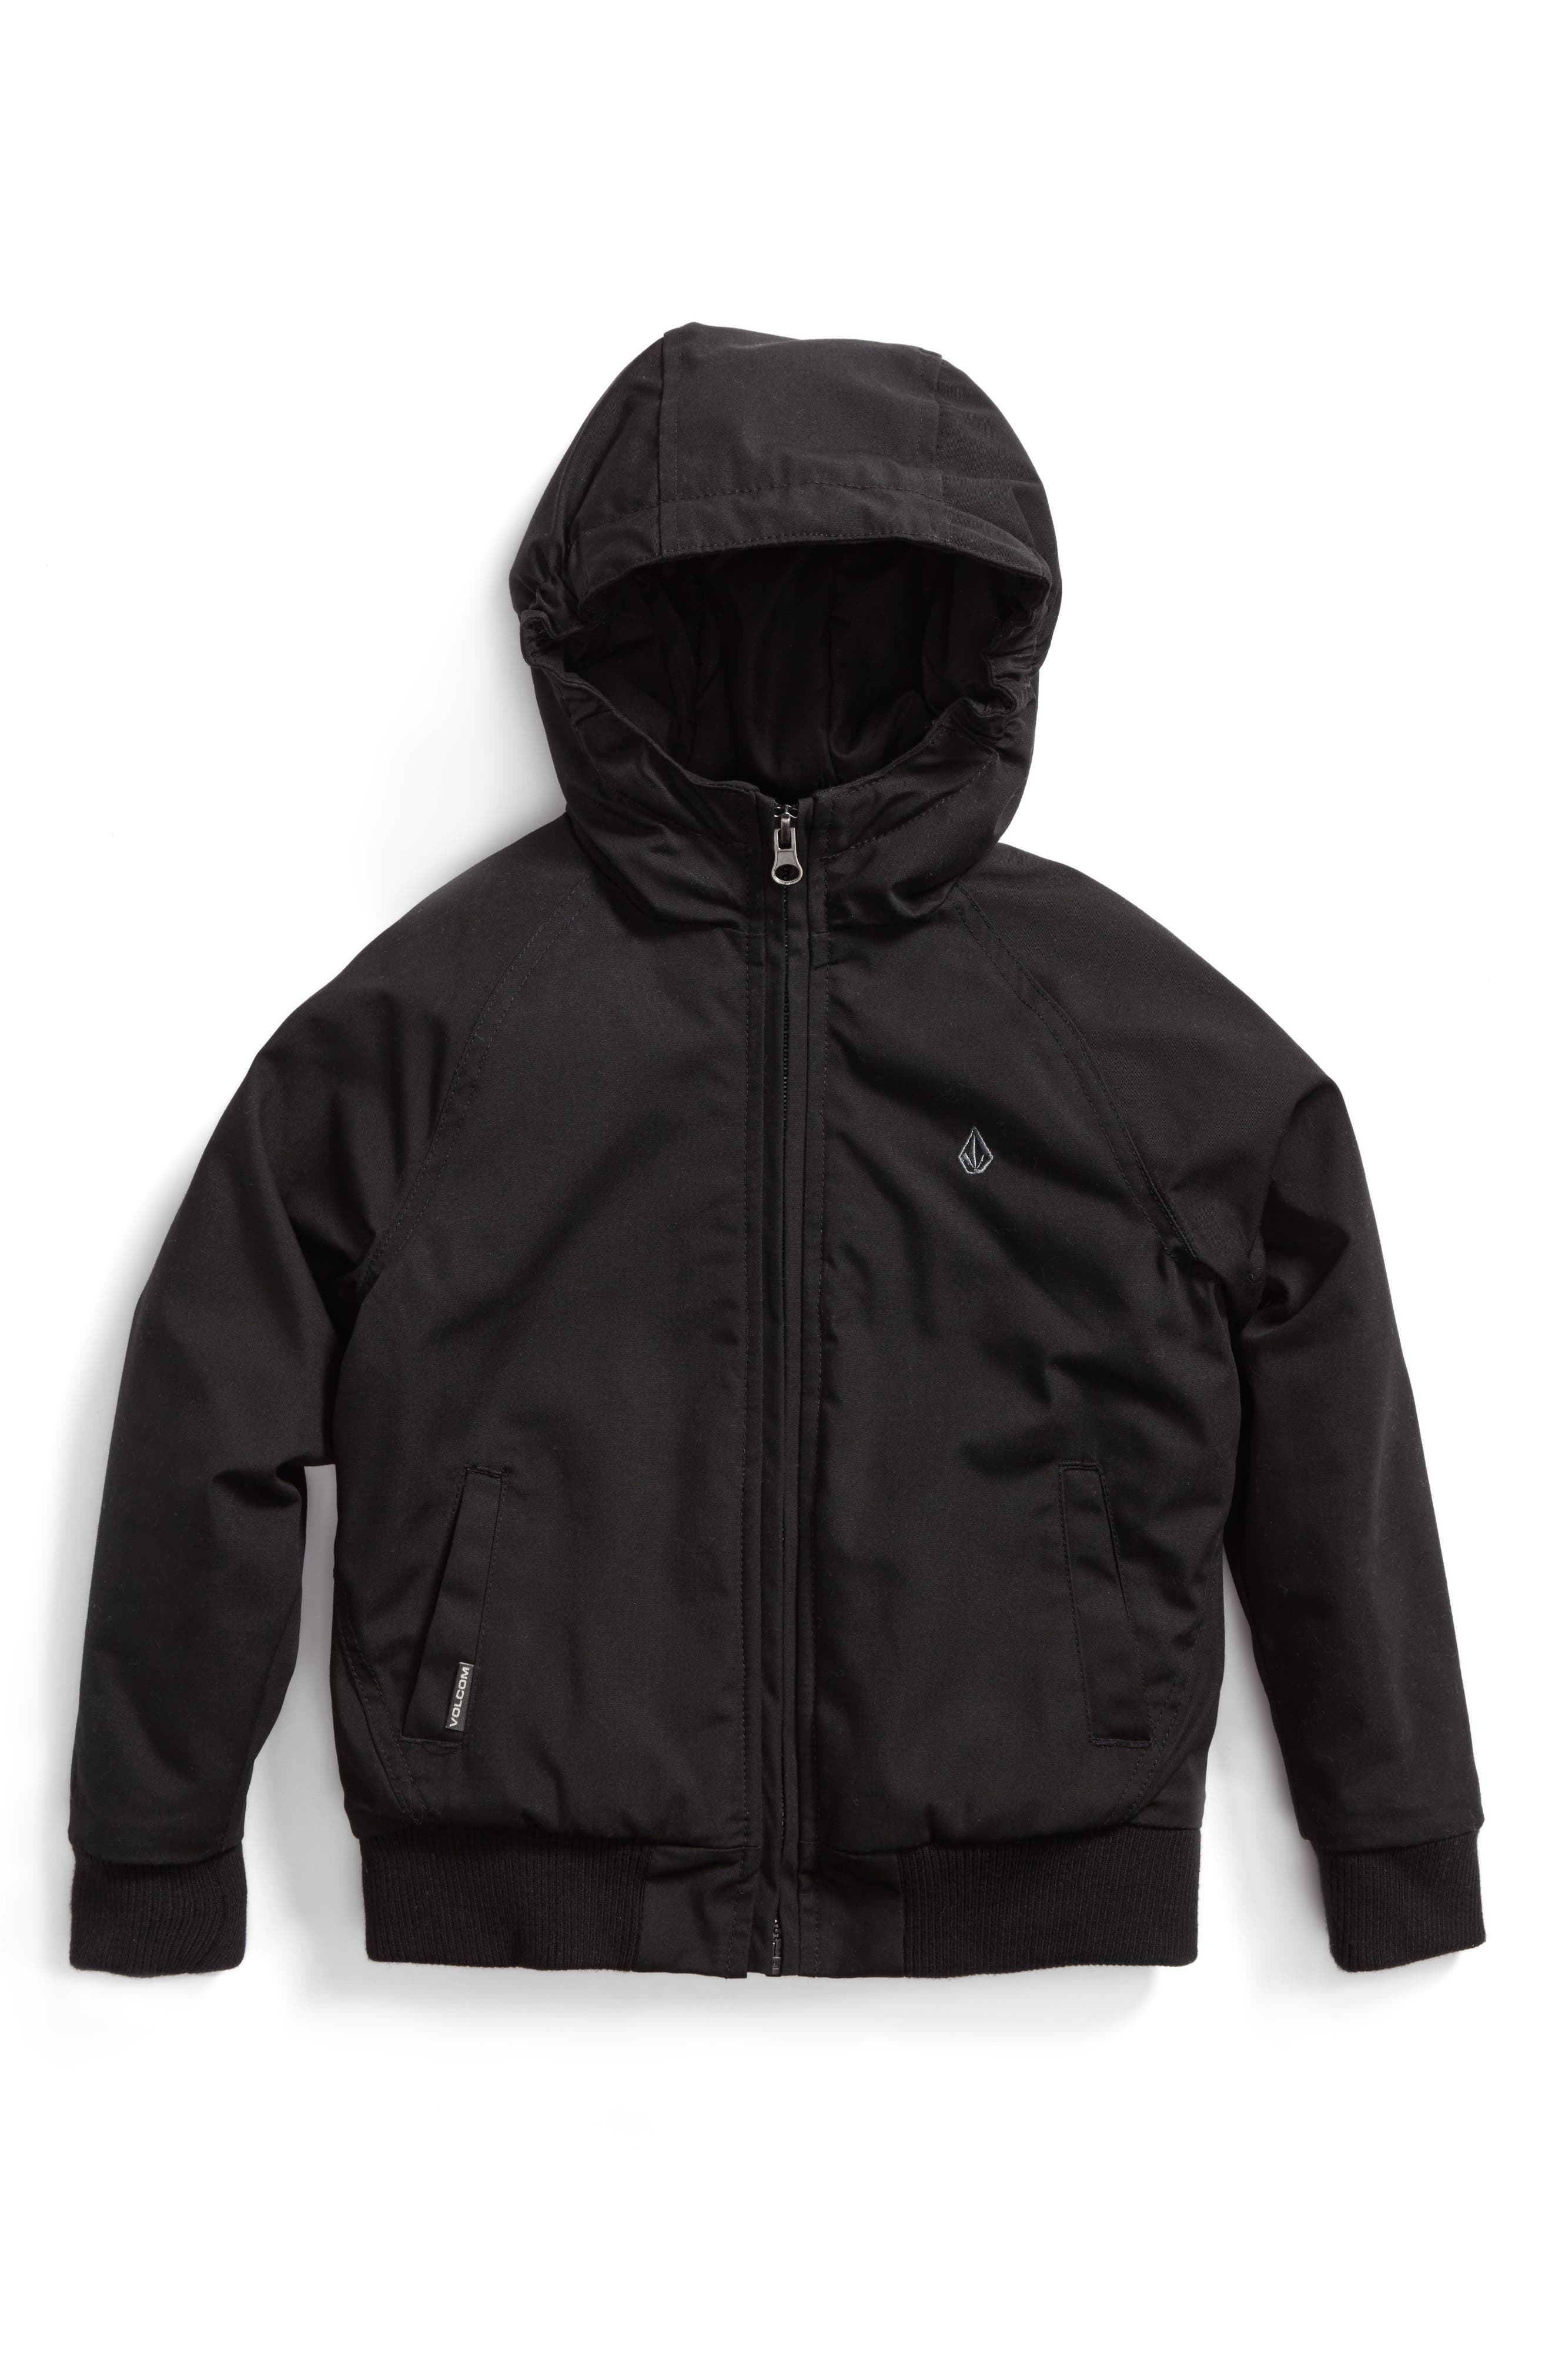 Alternate Image 1 Selected - Volcom Hernan Heavyweight Hooded Jacket (Toddler Boys & Little Boys)